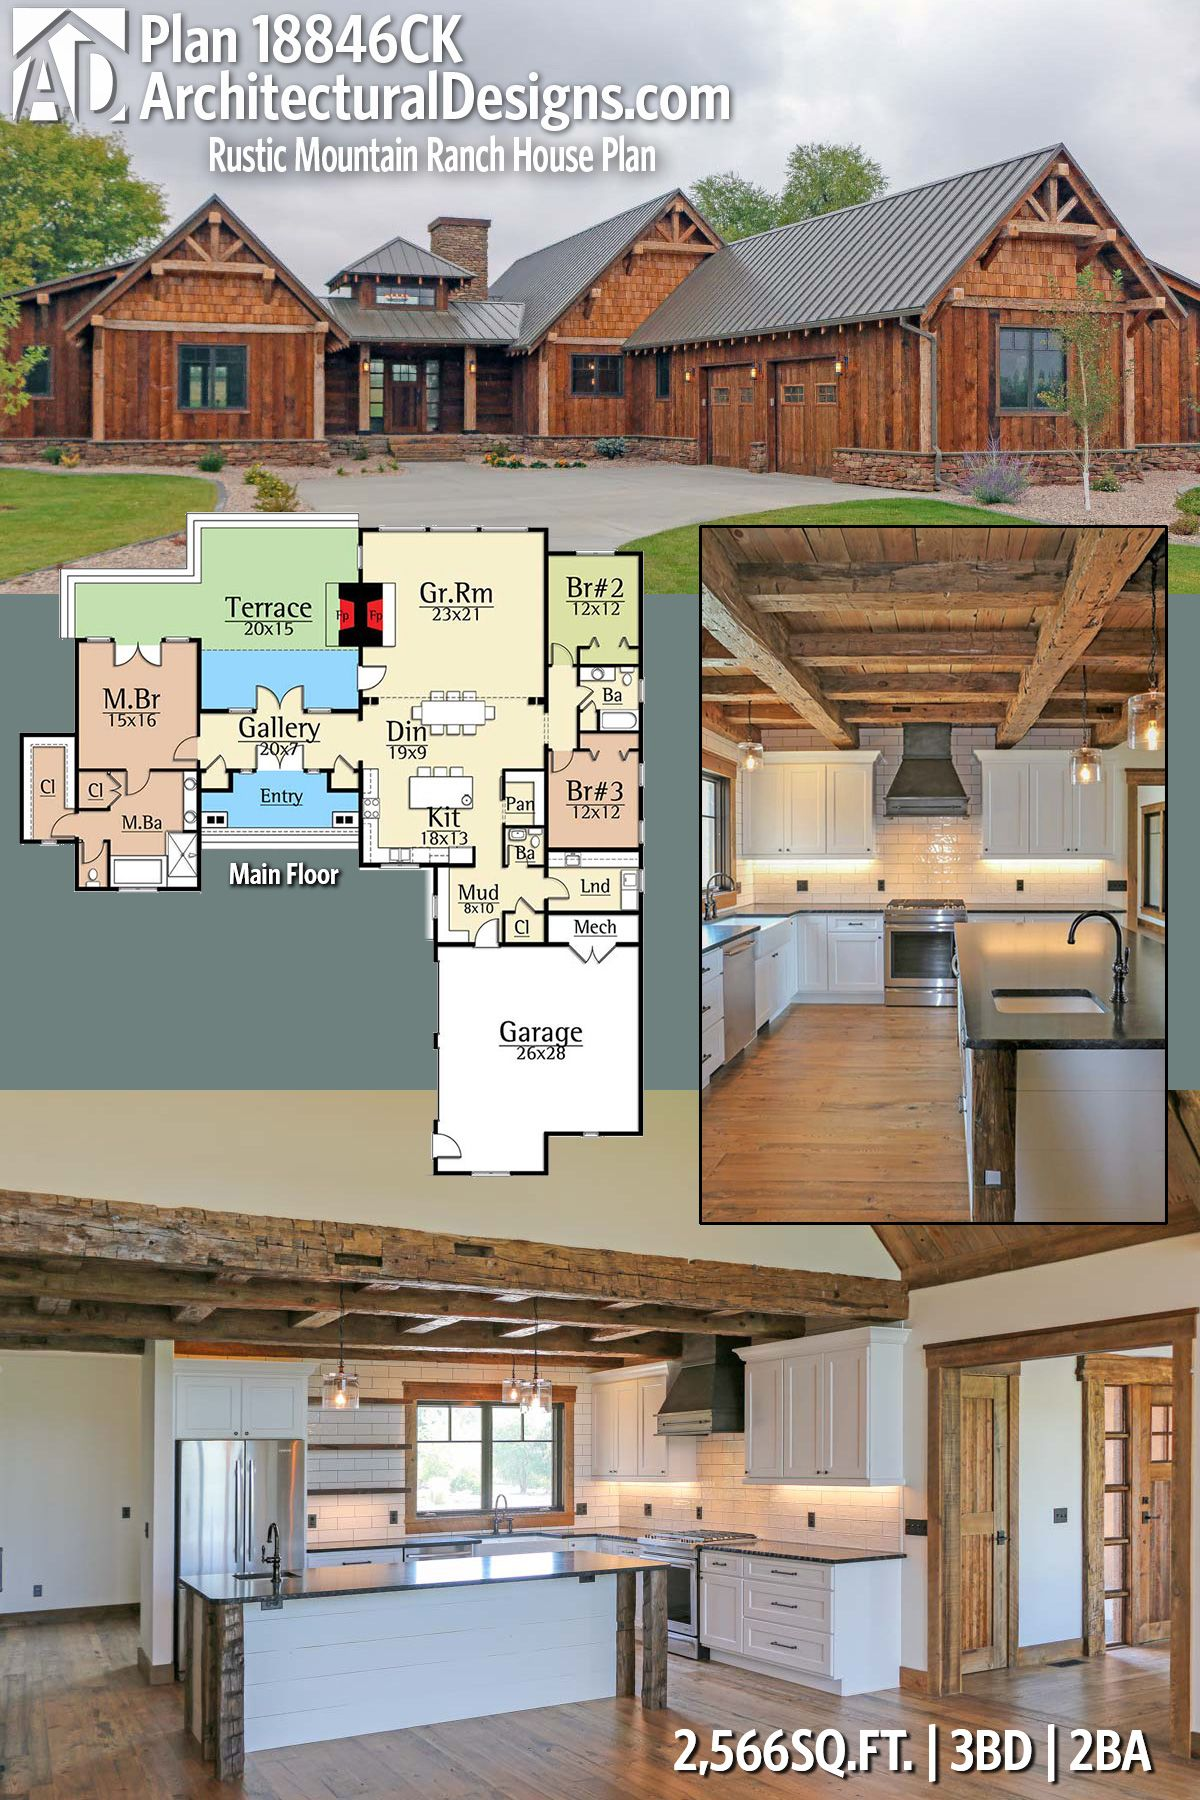 Plan 18846ck Rustic Mountain Ranch House Plan Mountain Ranch House Plans New House Plans Rustic House Plans